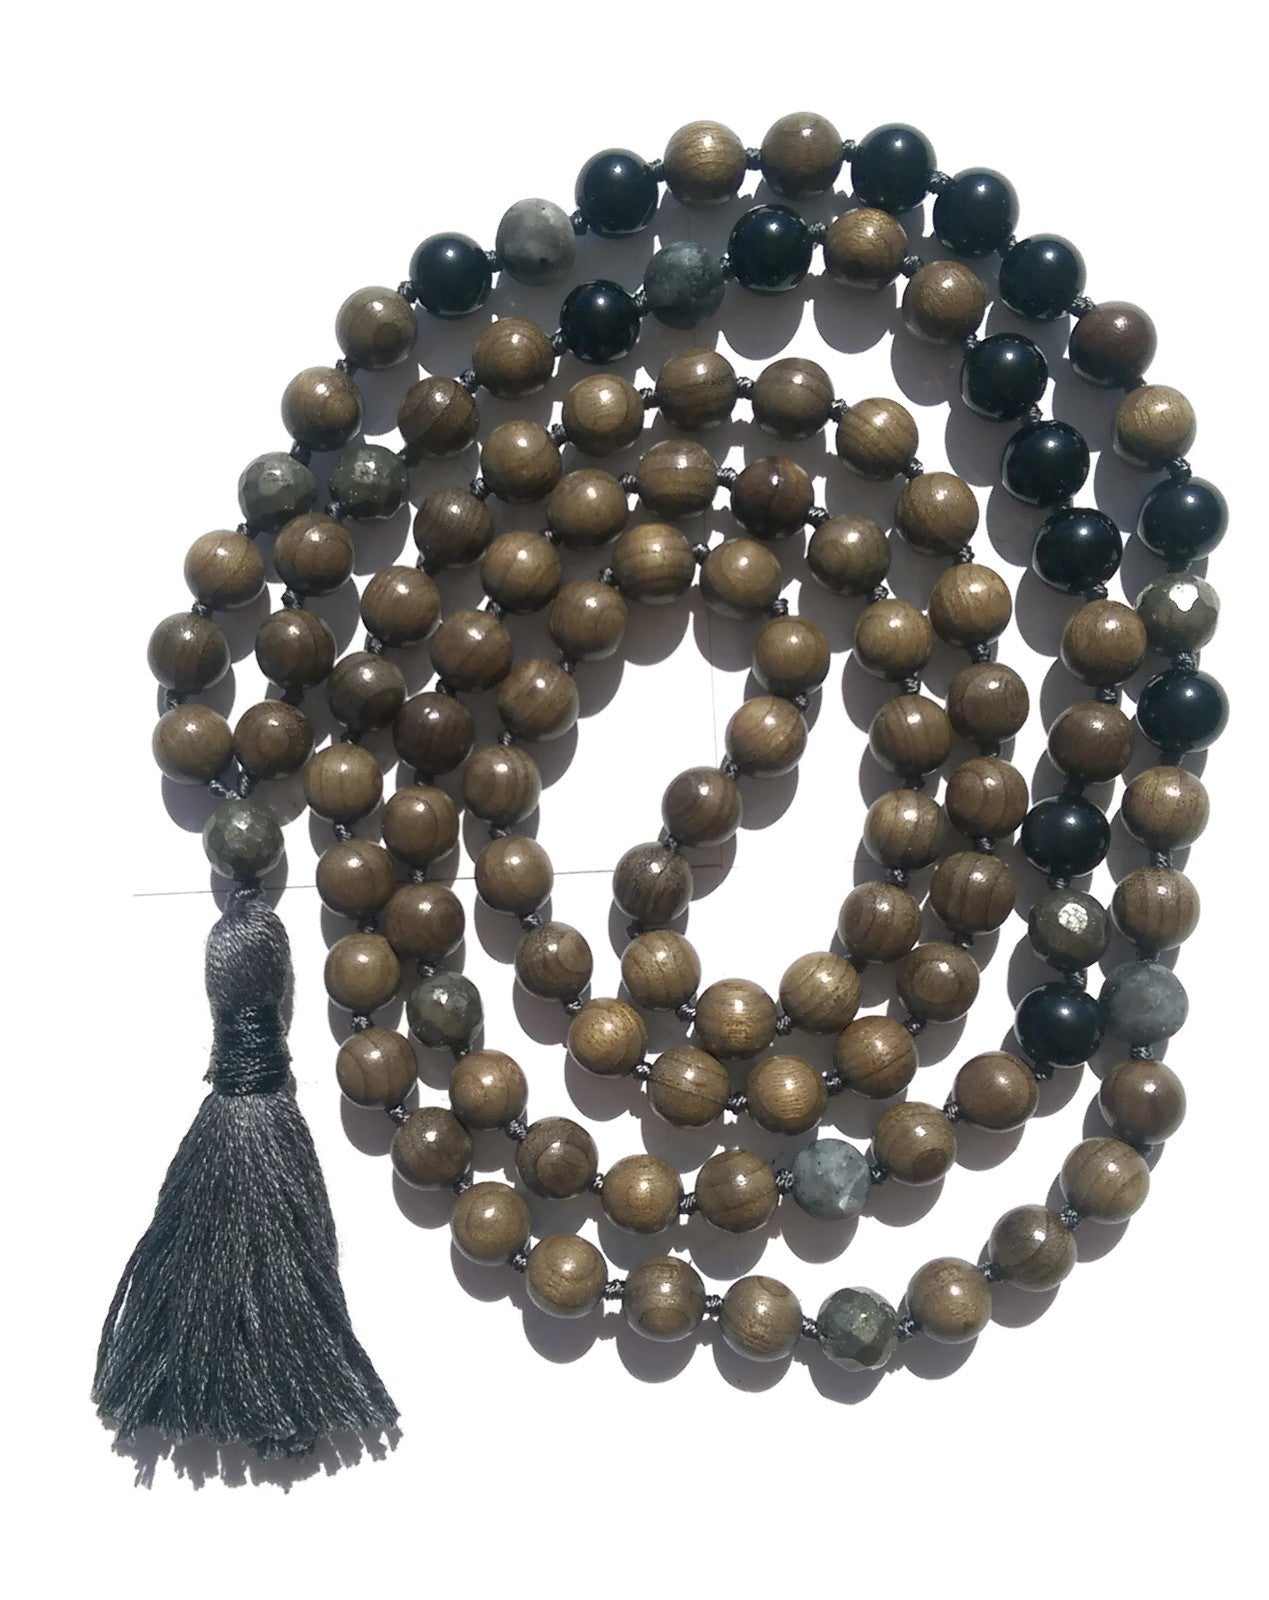 Pure Collection 8mm Sandalwood Obsidian Labradorite Pyrite Traditional Hand Knotted 108 Bead Meditation Mala Necklace Root Chakra Yoga